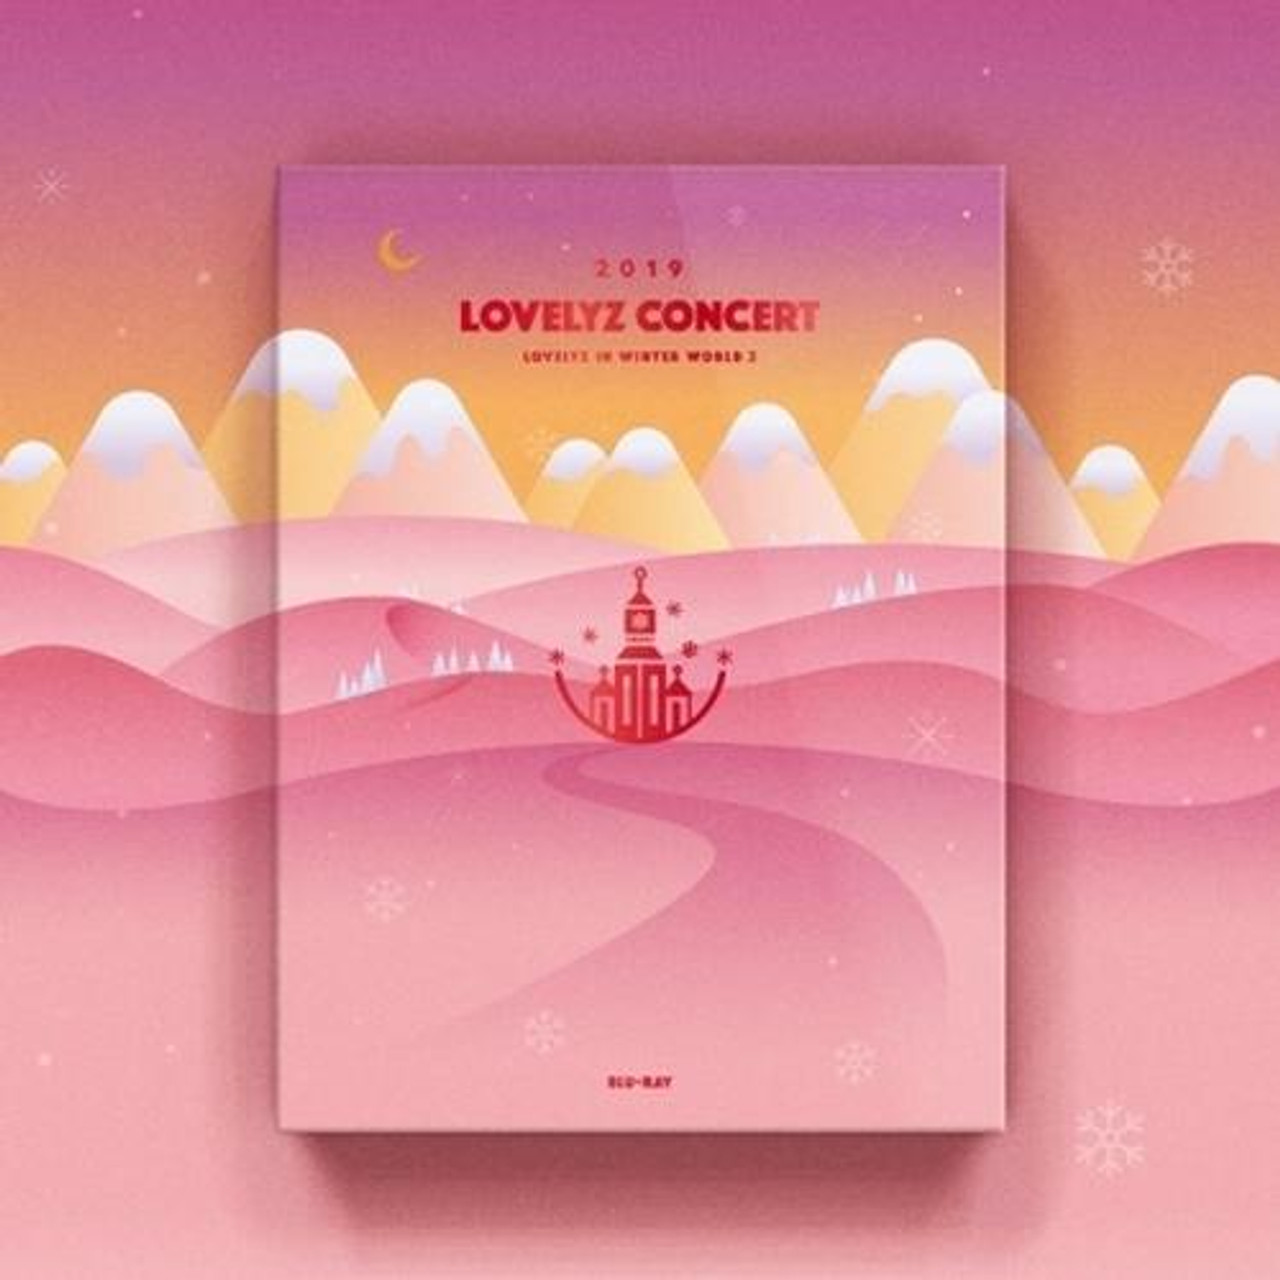 Lovelyz - 2019 LOVELYZ CONCERT [LOVELYZ IN WINTER WORLD 3] BLU-RAY